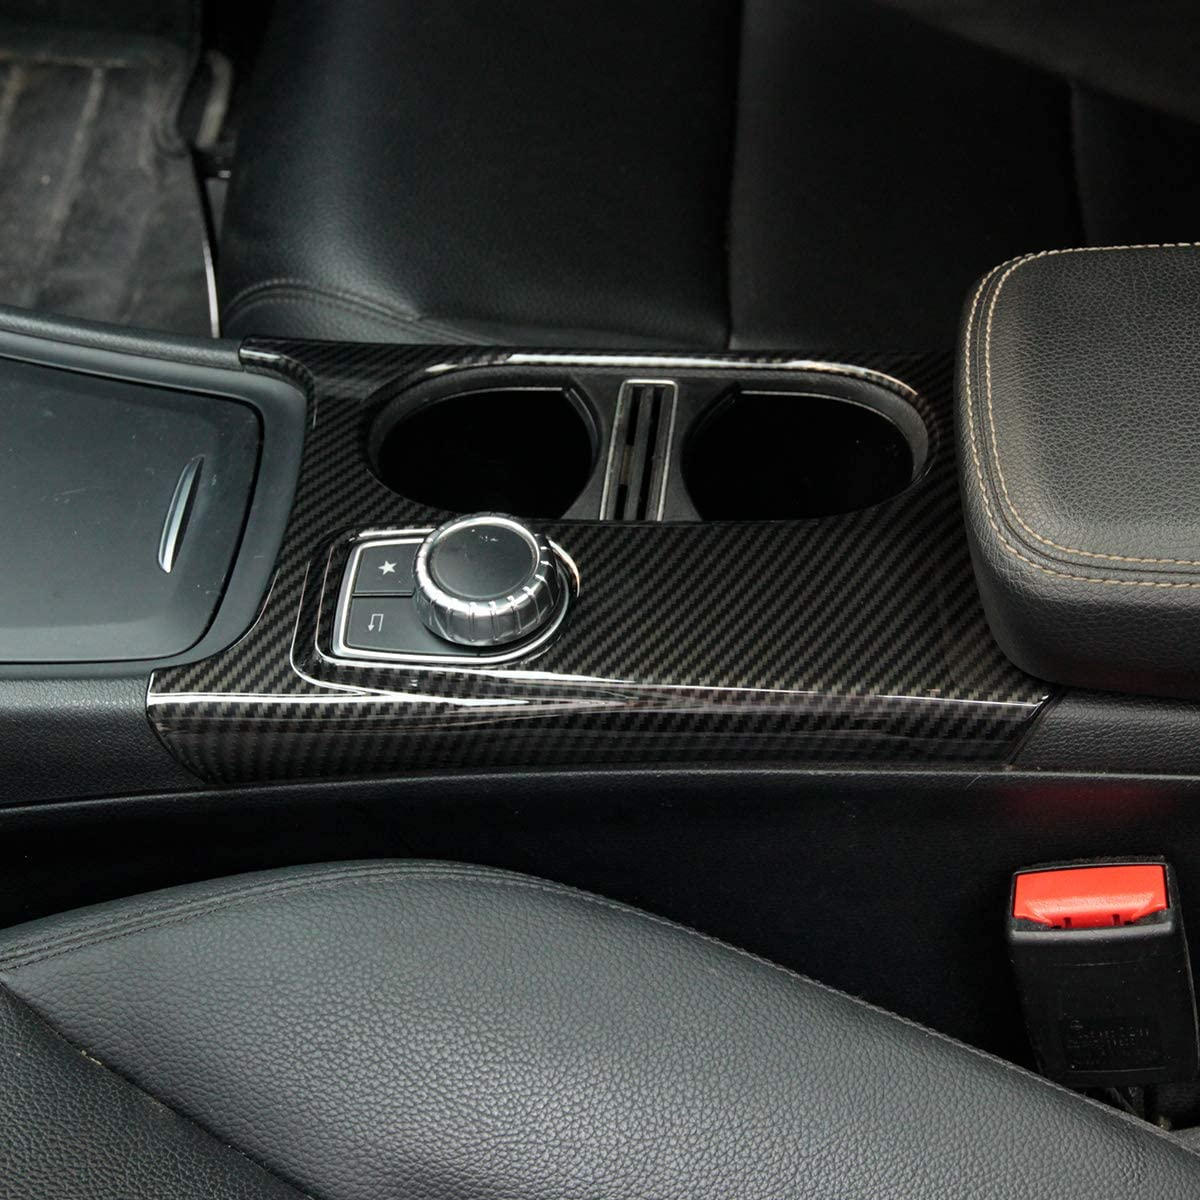 YIWANG Carbon Fiber Interior Control Cup Holder Cover Trim for Mercedes Benz A//GLA//CLA Class C117 W117 W176 X156 2012-2018 Left Hand Drive Auto Accessories